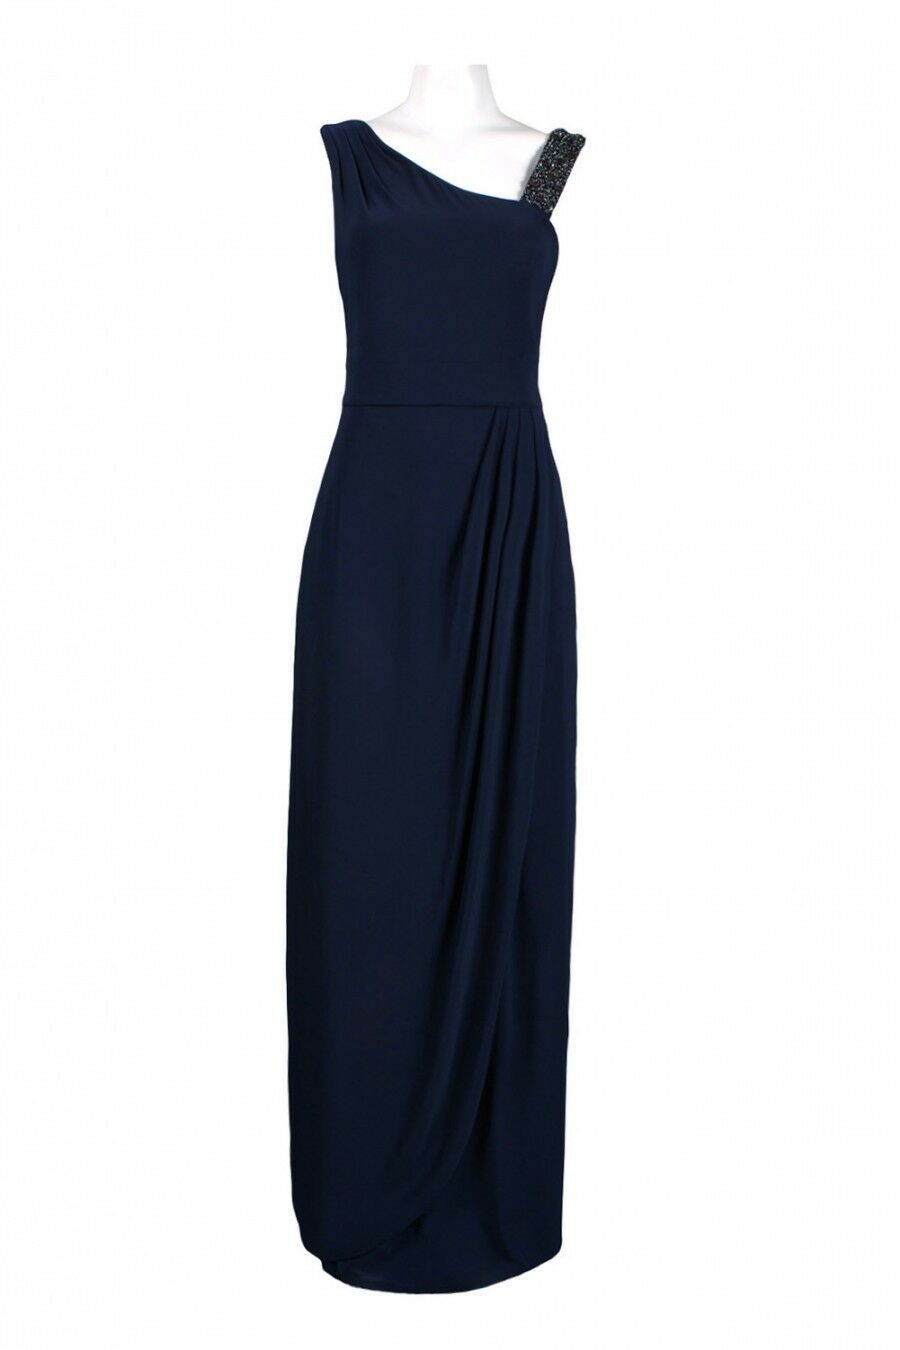 Decode Size Women's Side Draped Long Dress Gown Size 0